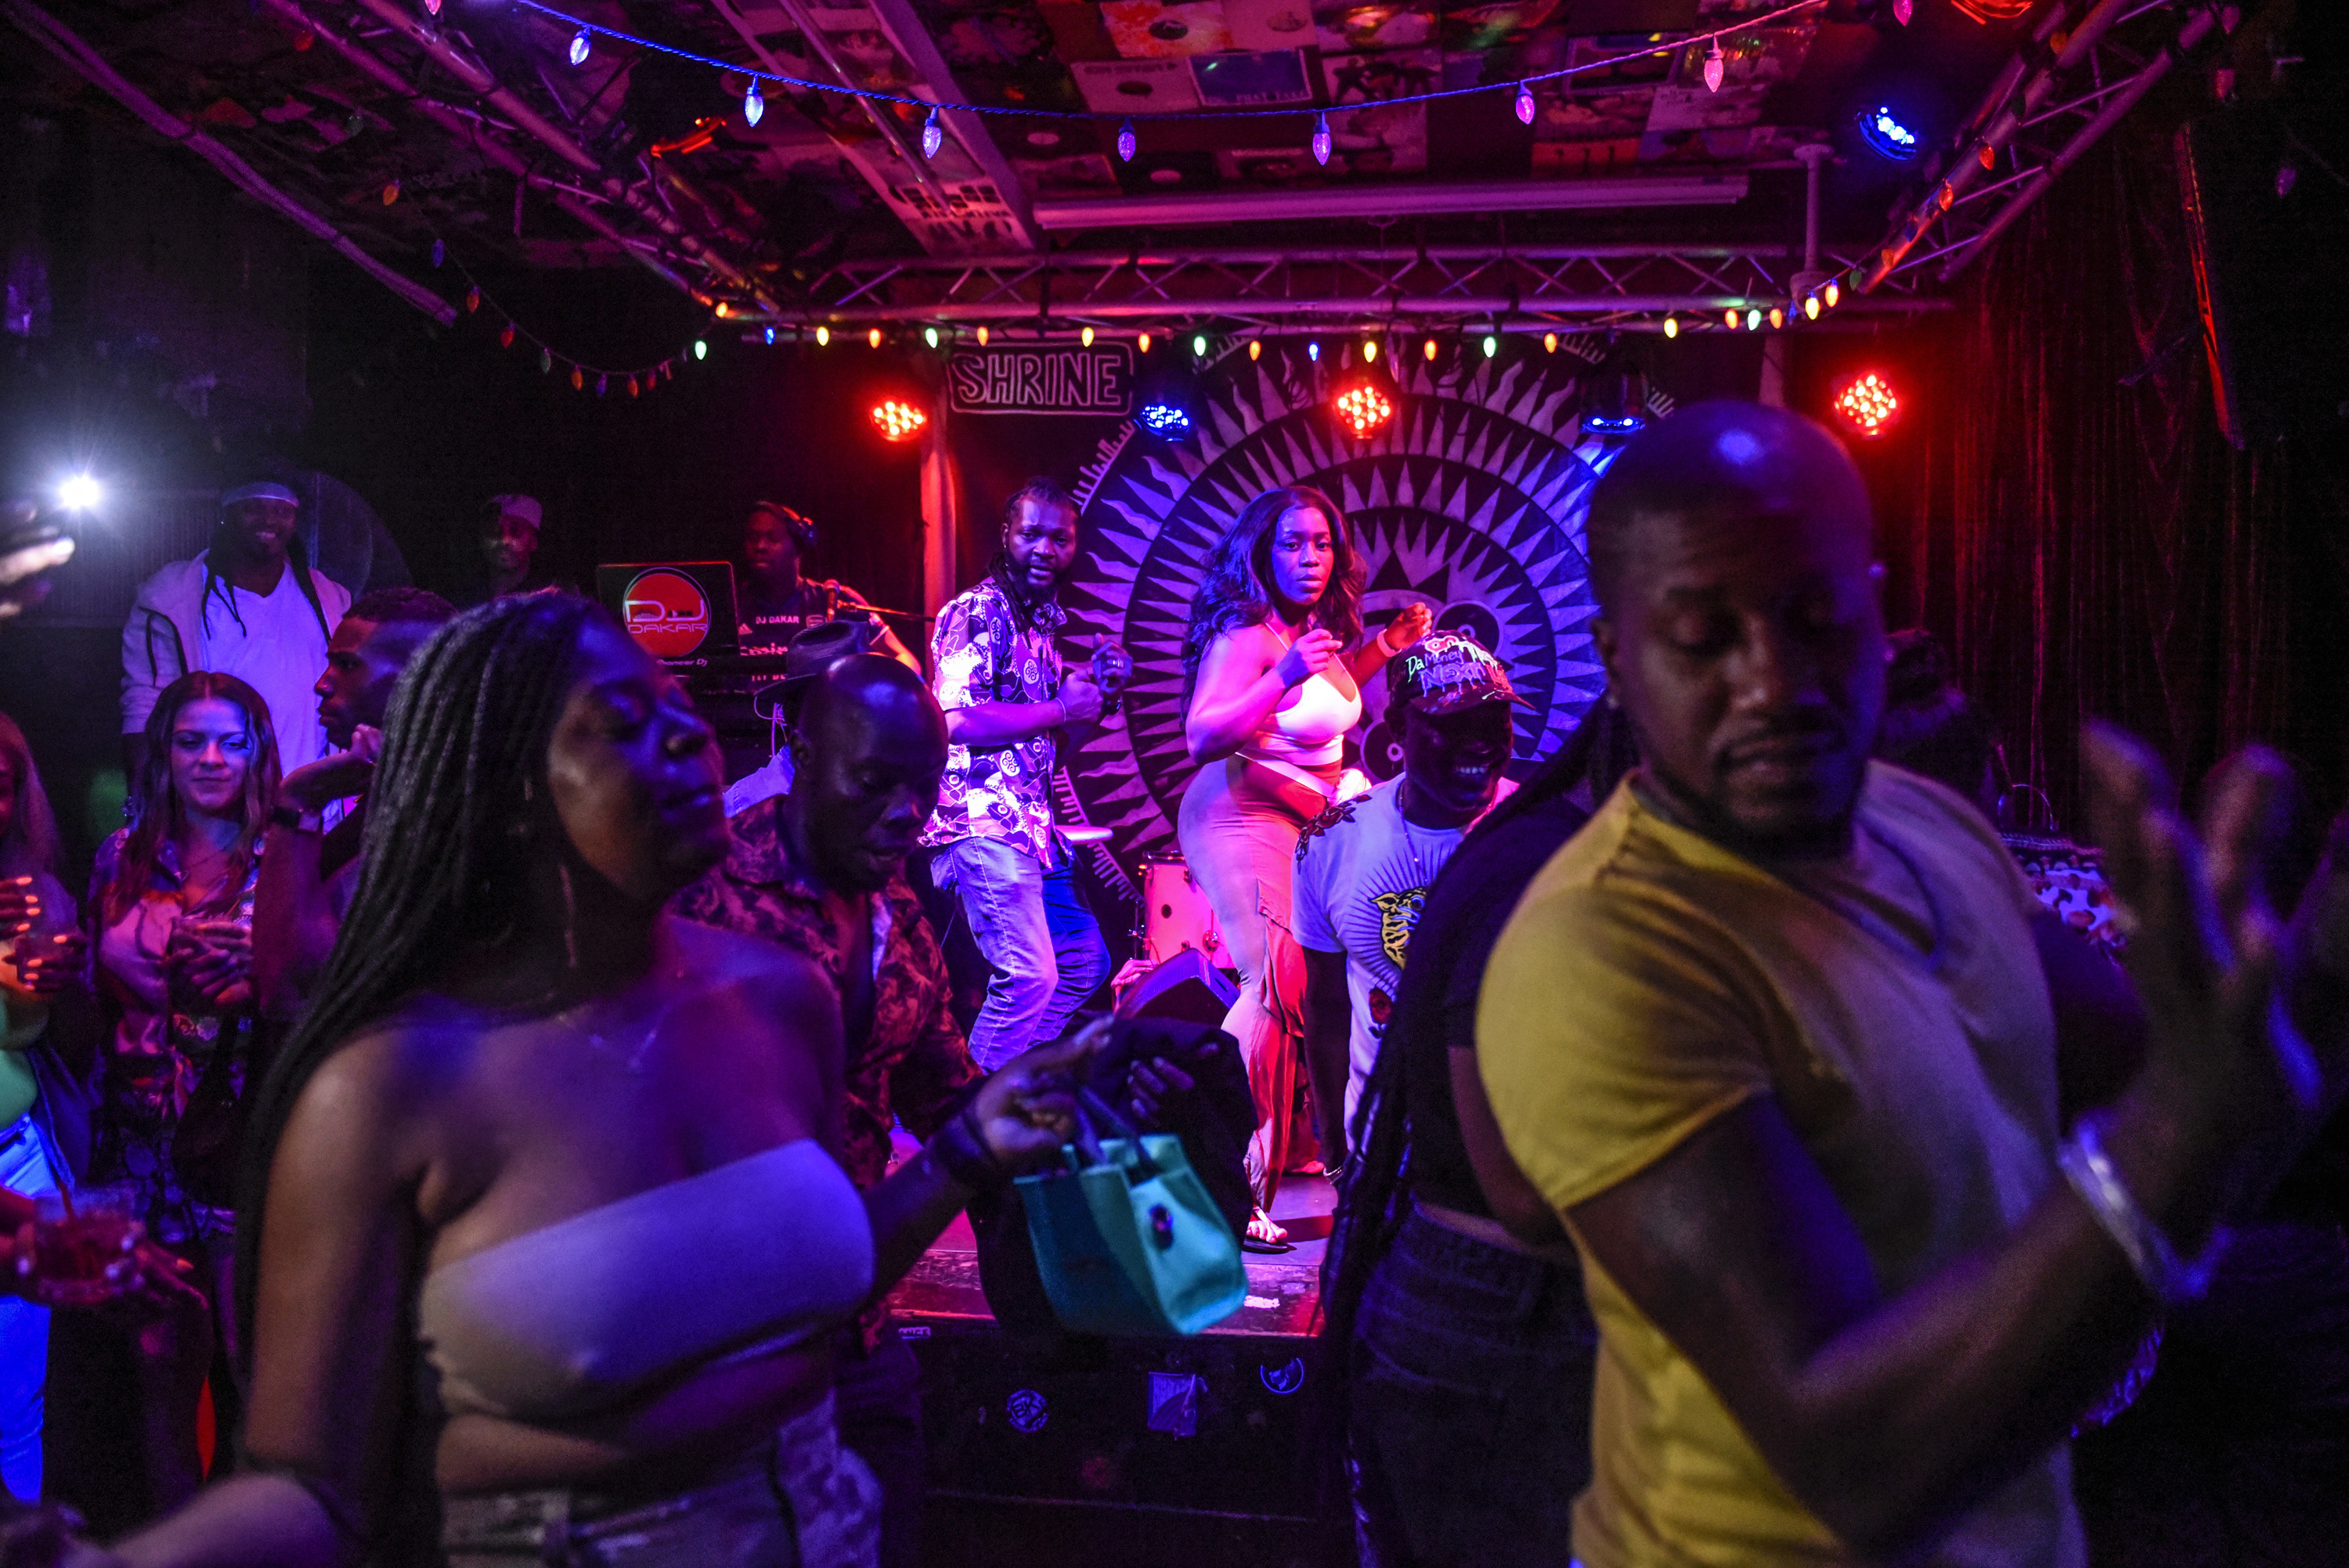 The crowd at the Shrine in Harlem danced to Afrobeats as fireworks exploded outside in celebration of July 4th